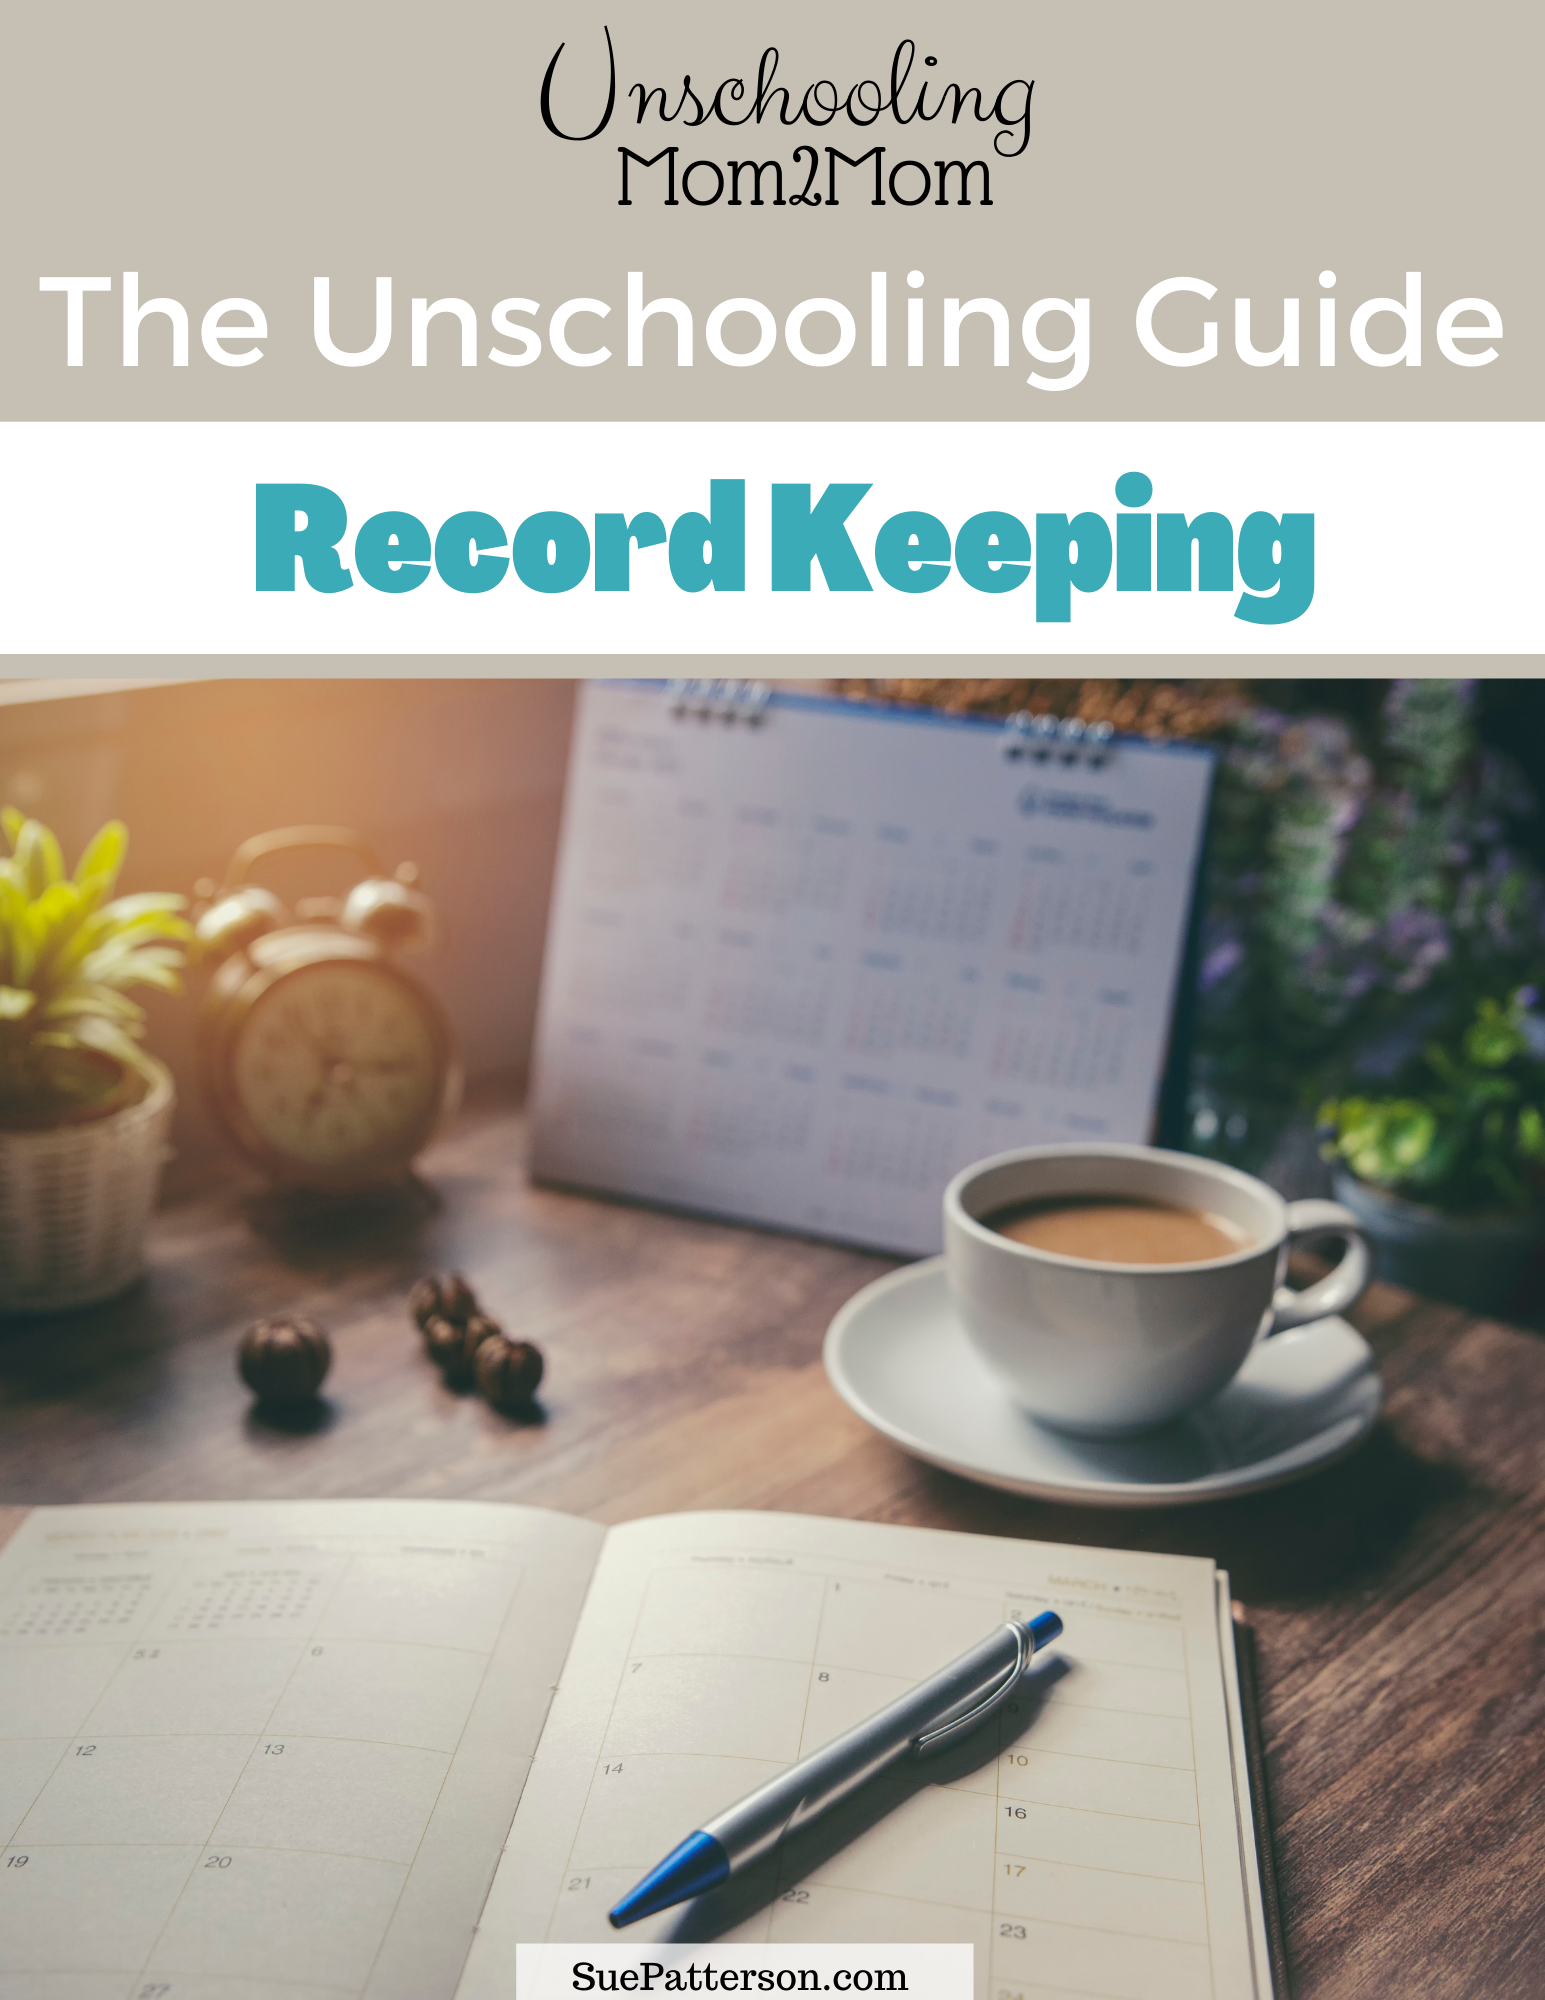 Unschooling Guide Record Keeping cover